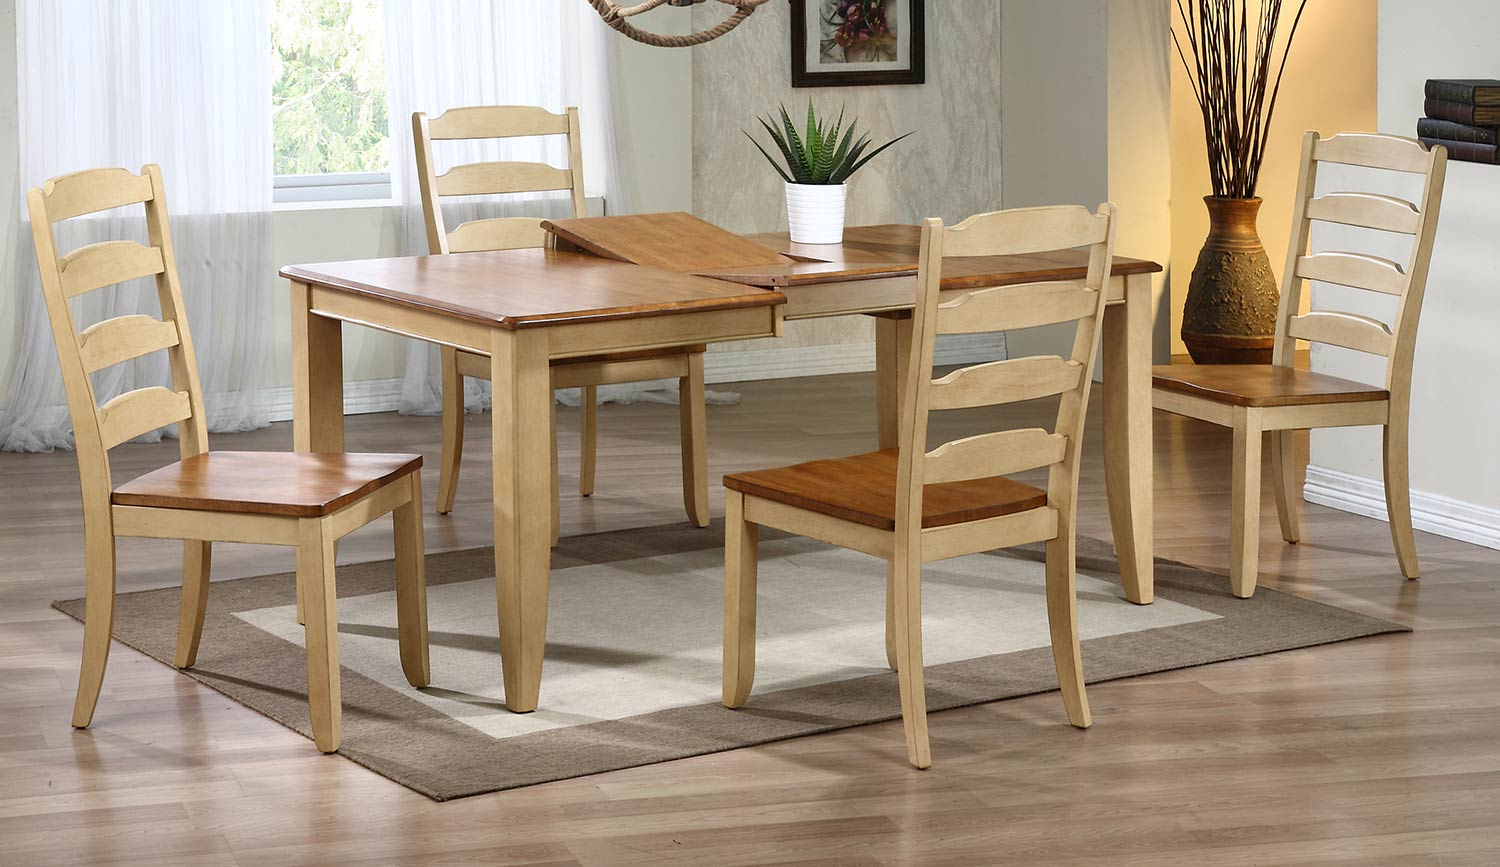 Iconic Furniture Rectangular Leg Dining Set with Ladder Back Dining Chair - Honey/Sand